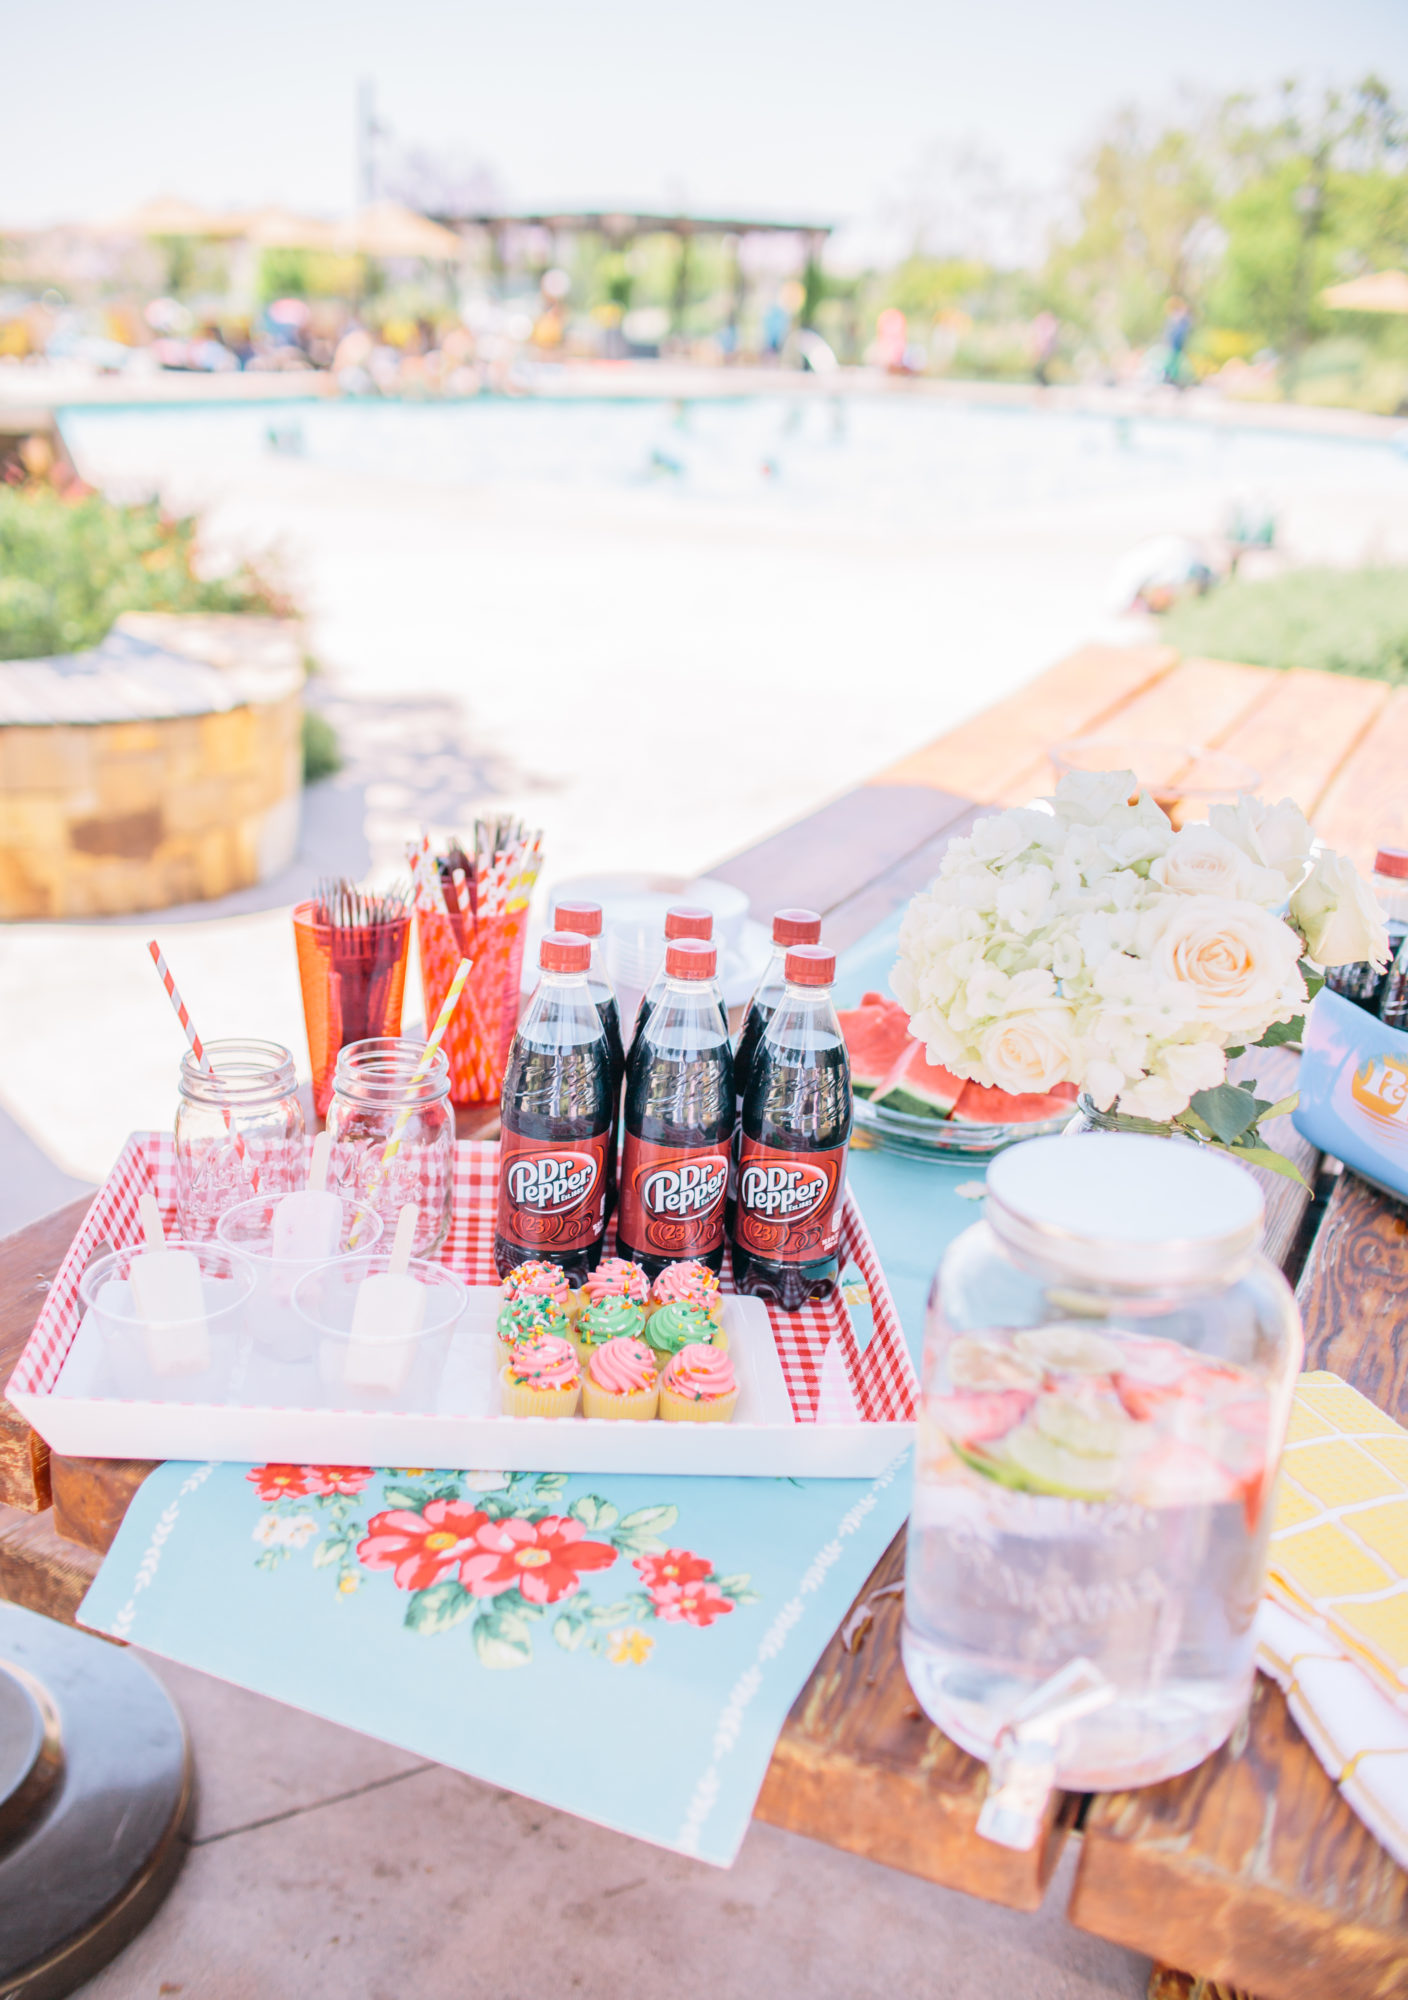 5 Steps to a Fabulous, No-Fuss Summer Party